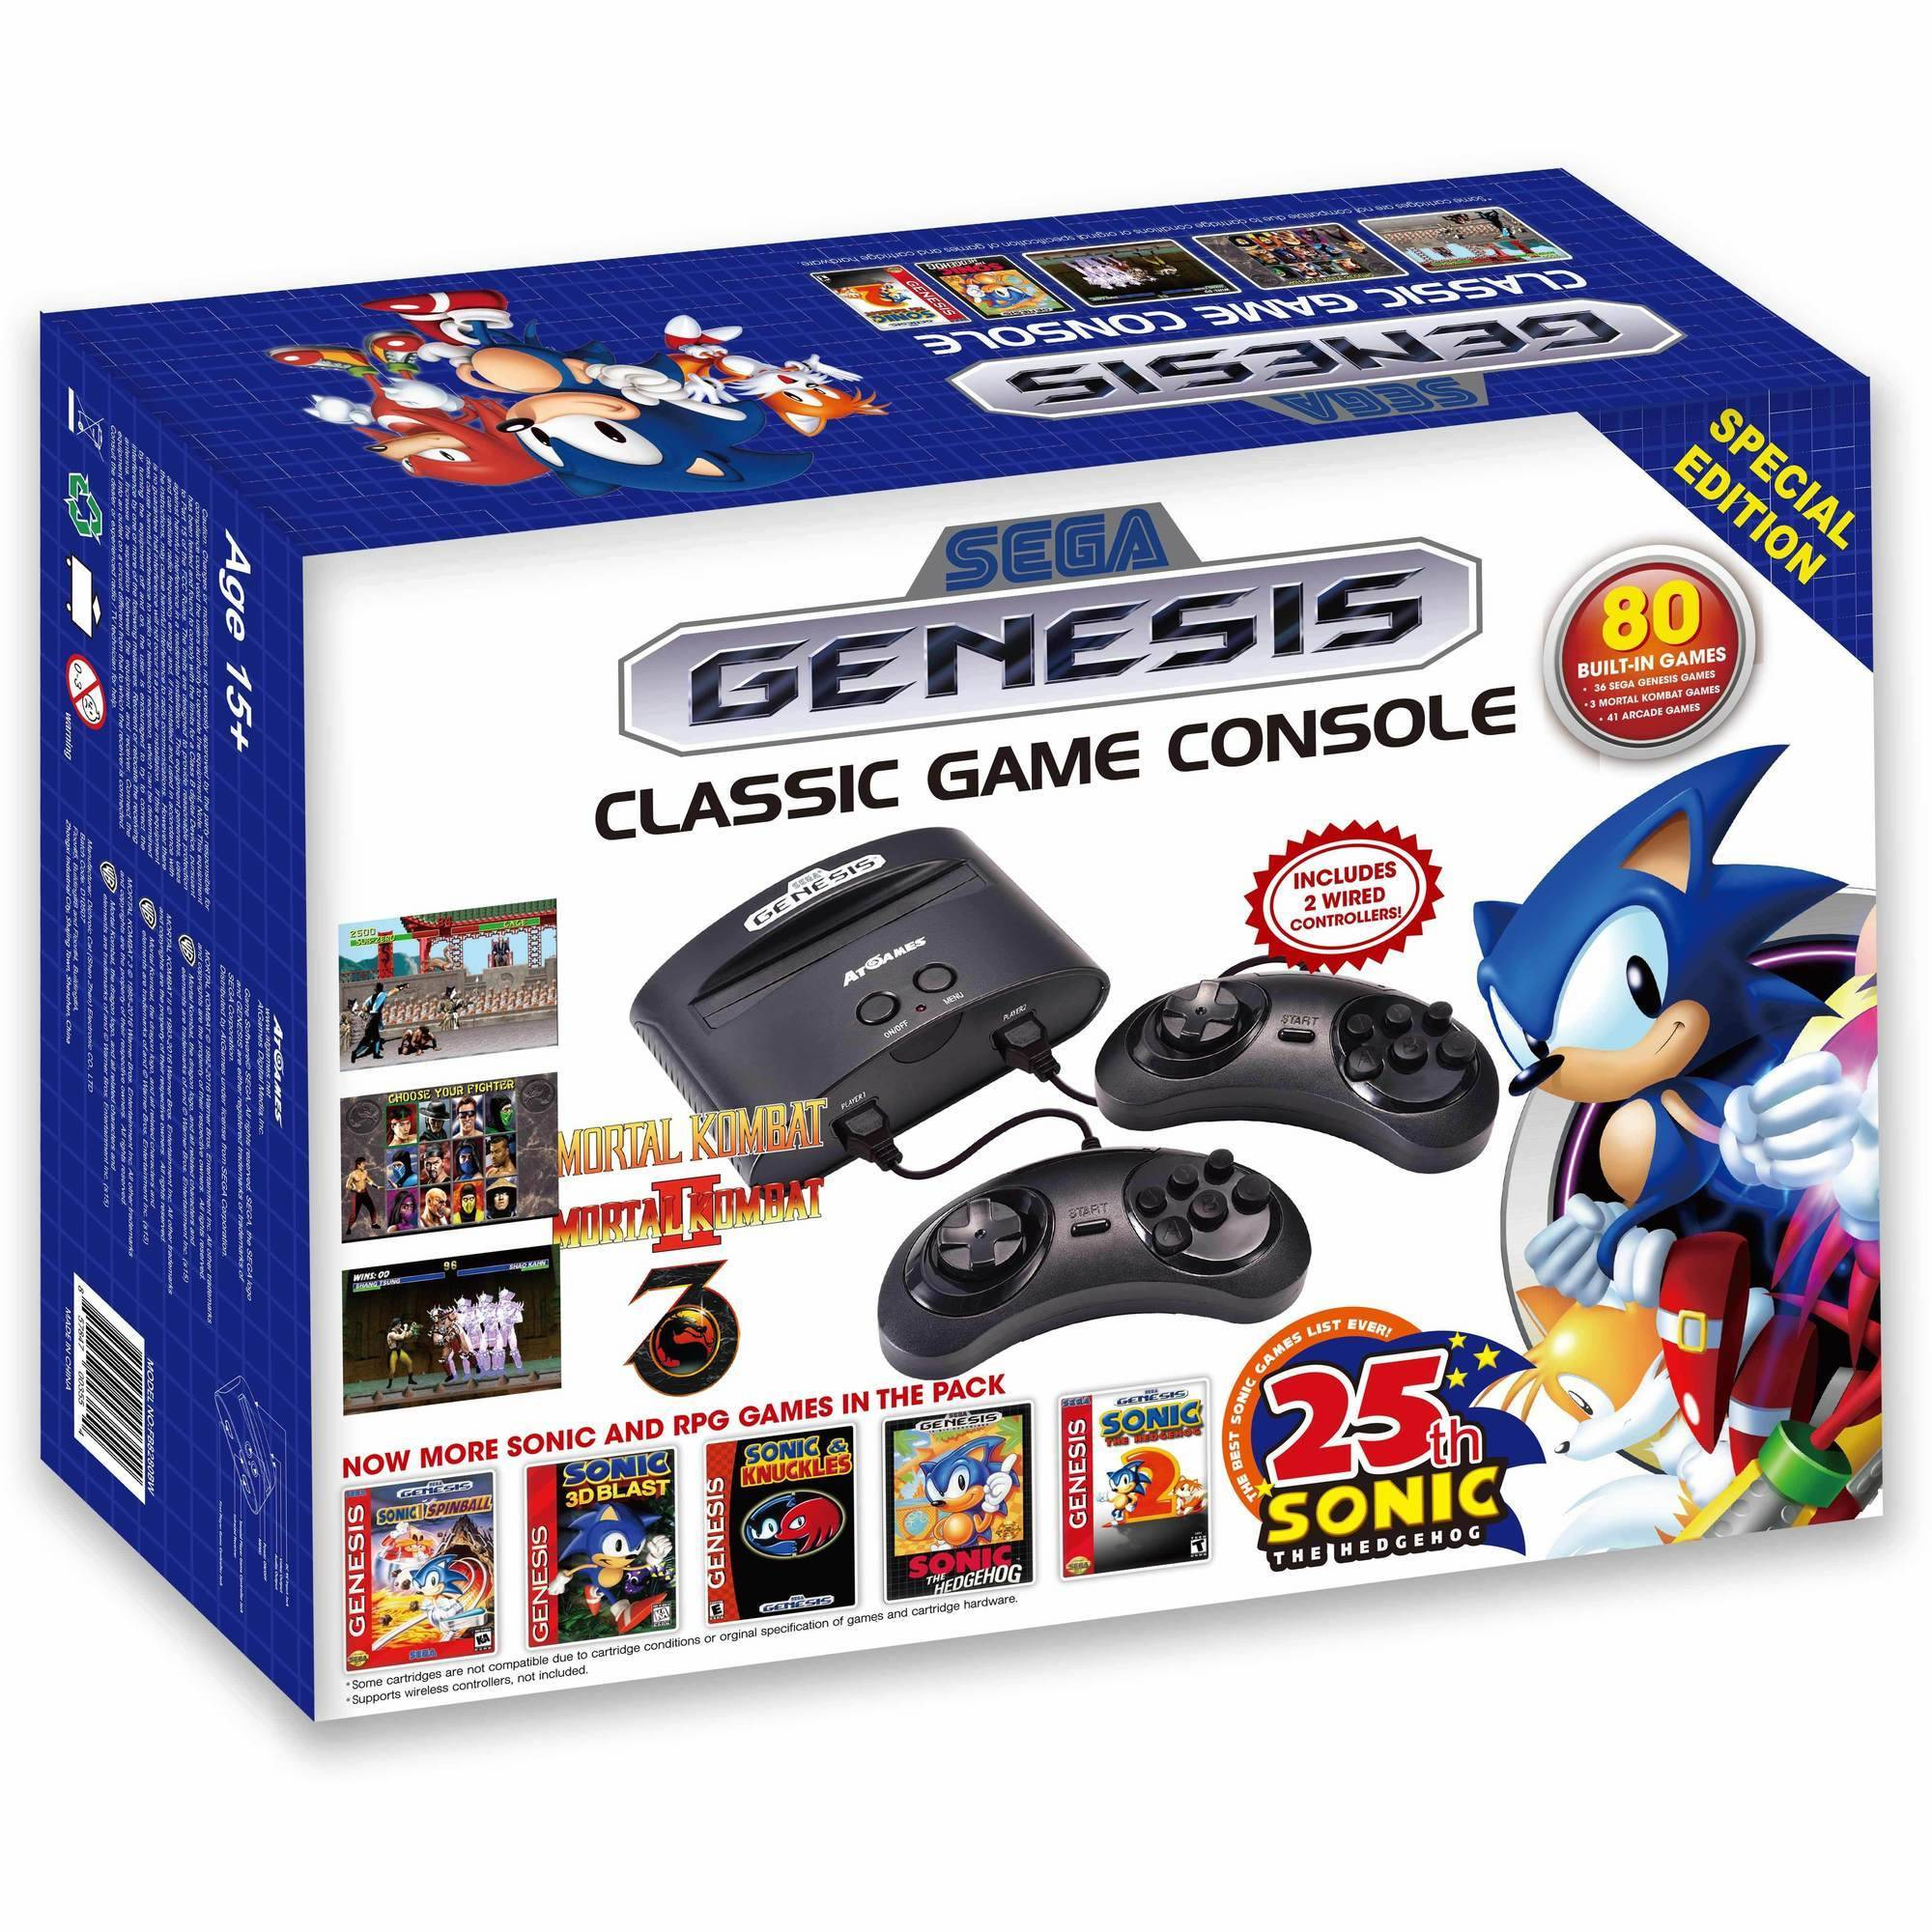 Image of SEGA Genesis Classic Game Console, 80 Built-In games With 2 Wired Controllers